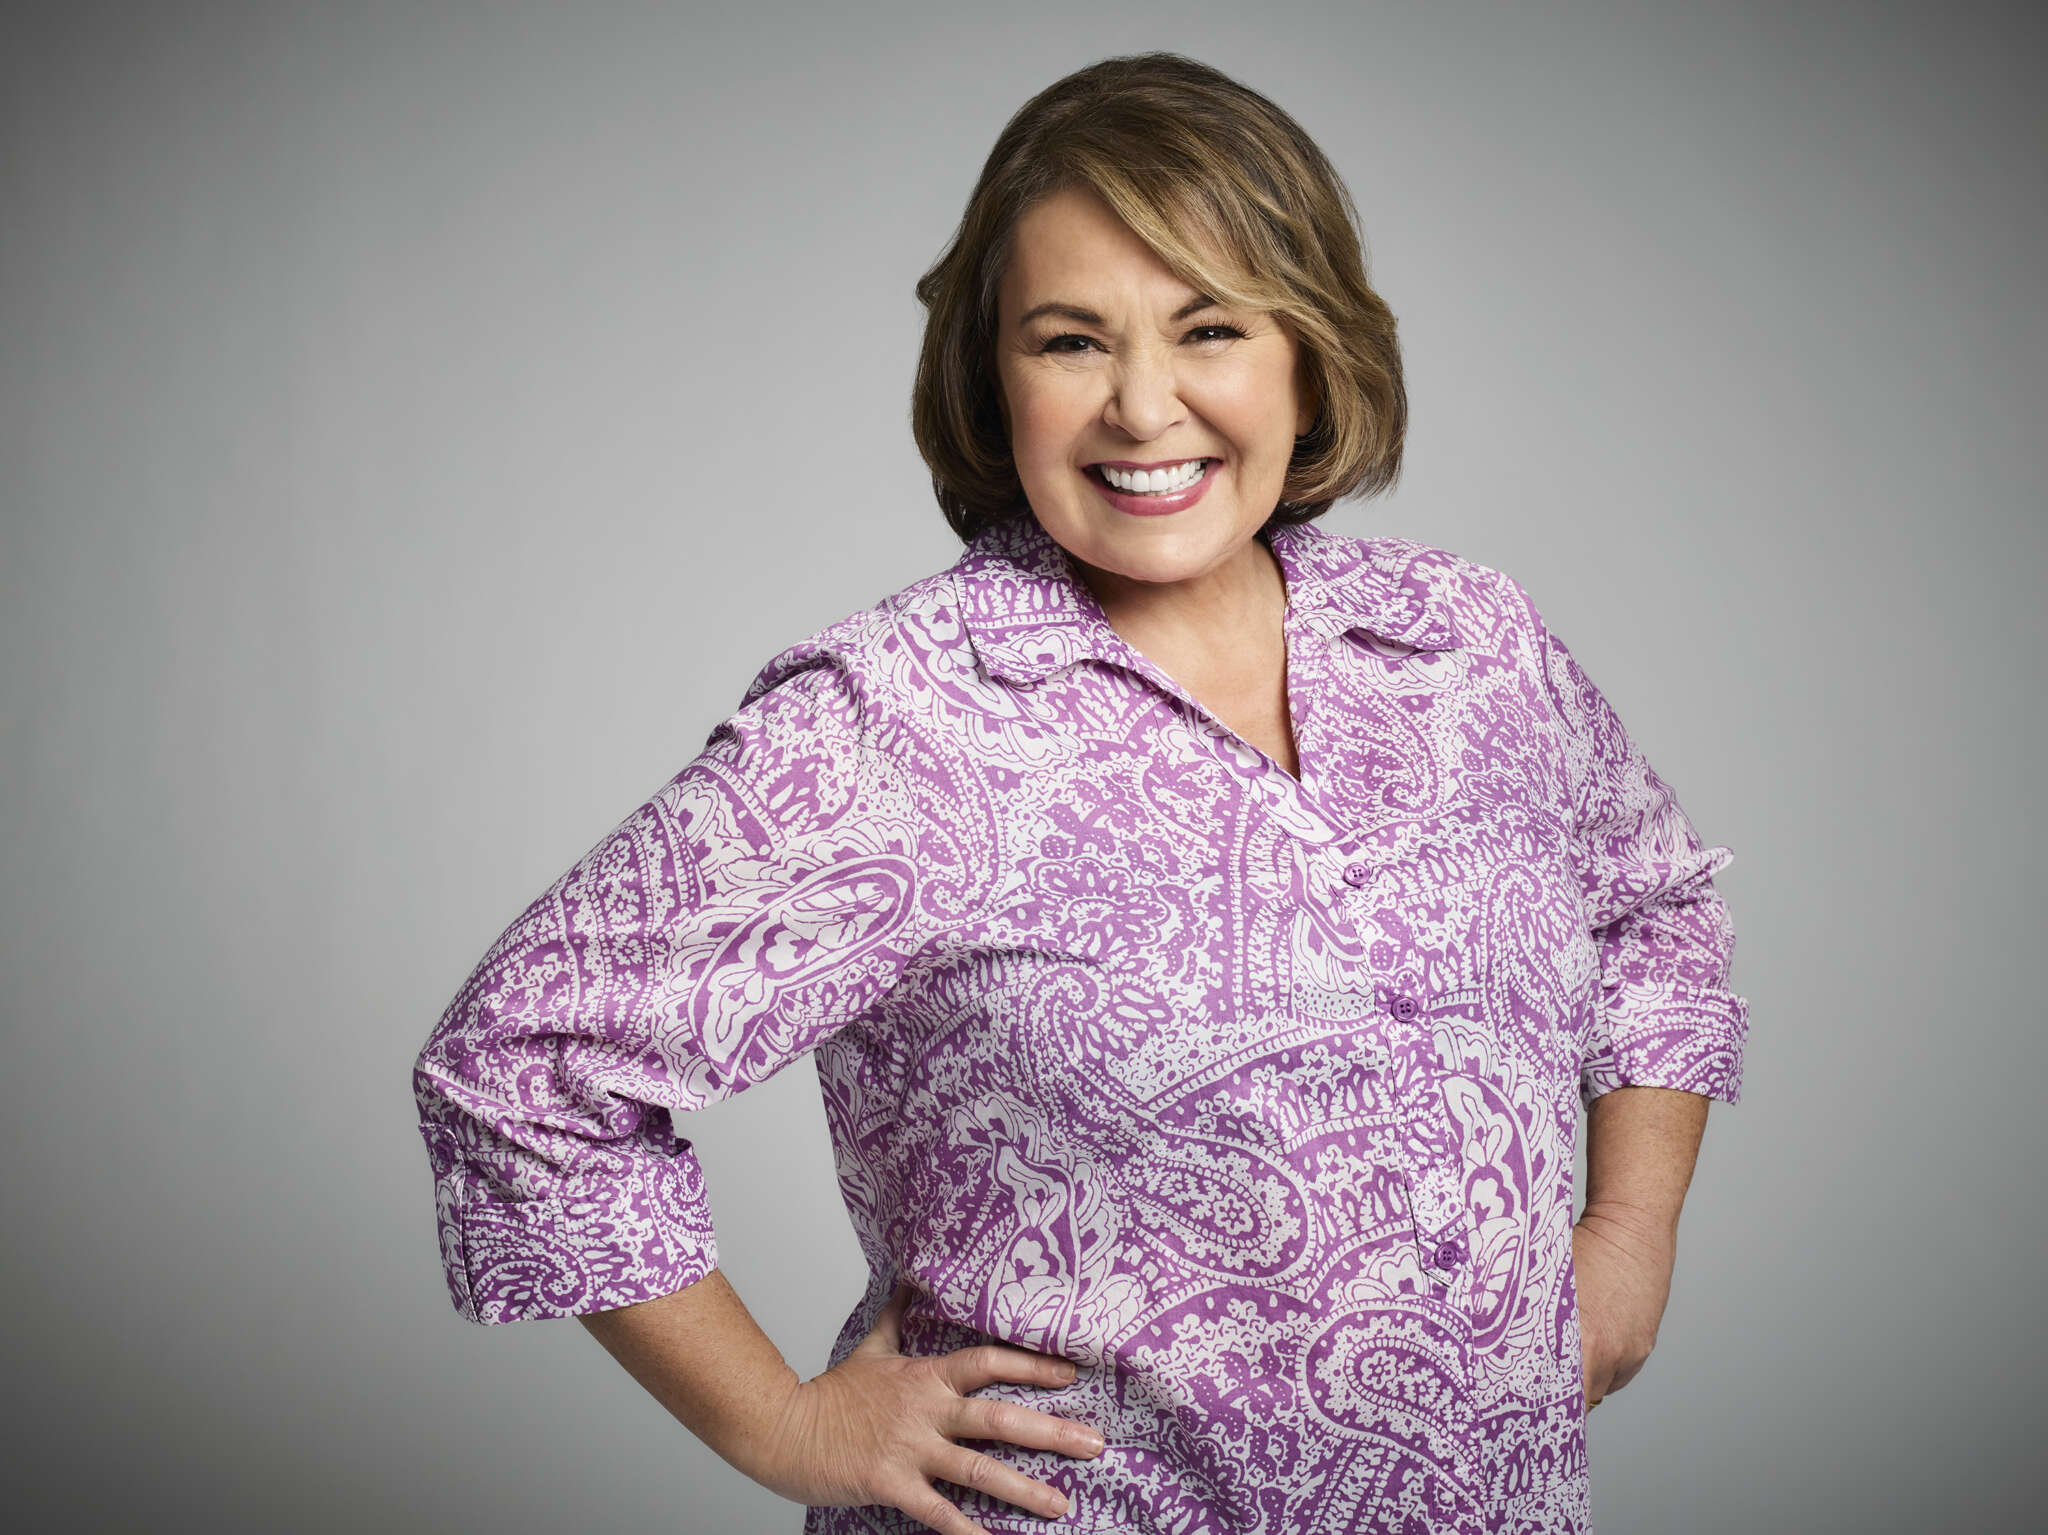 roseanne-barr-flirts-with-newly-single-kanye-west-alongside-bathing-suit-pics